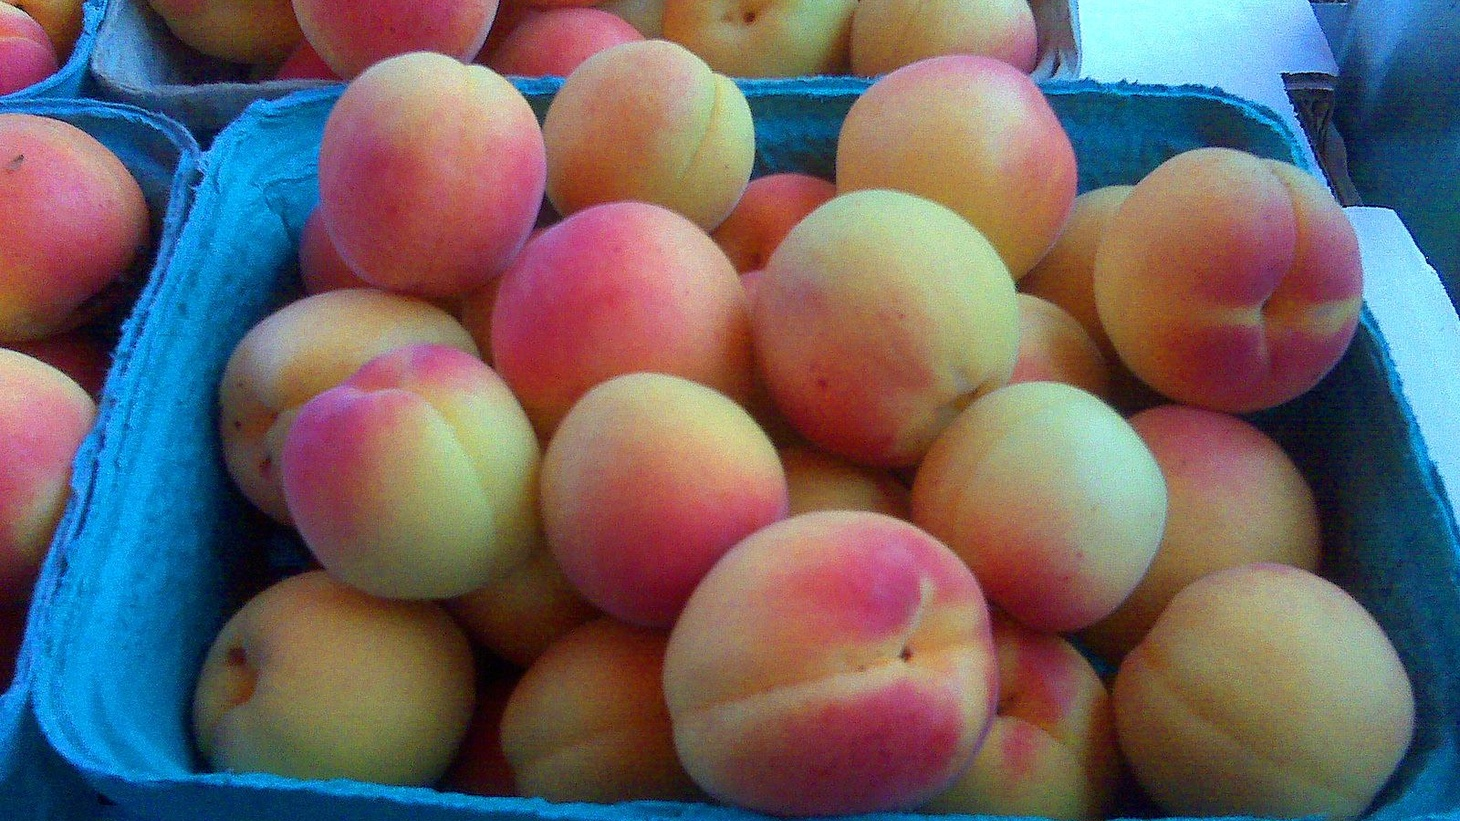 It's officially summer. In the spirit of kicking back, Good Food revisits some great segments. How French Toast can save the world, the 11 commandments of grilling, and the 5-second rule. Fact or fiction? Plus, Laura Avery finds Blenheim apricots at the Santa Monica Farmers Market.